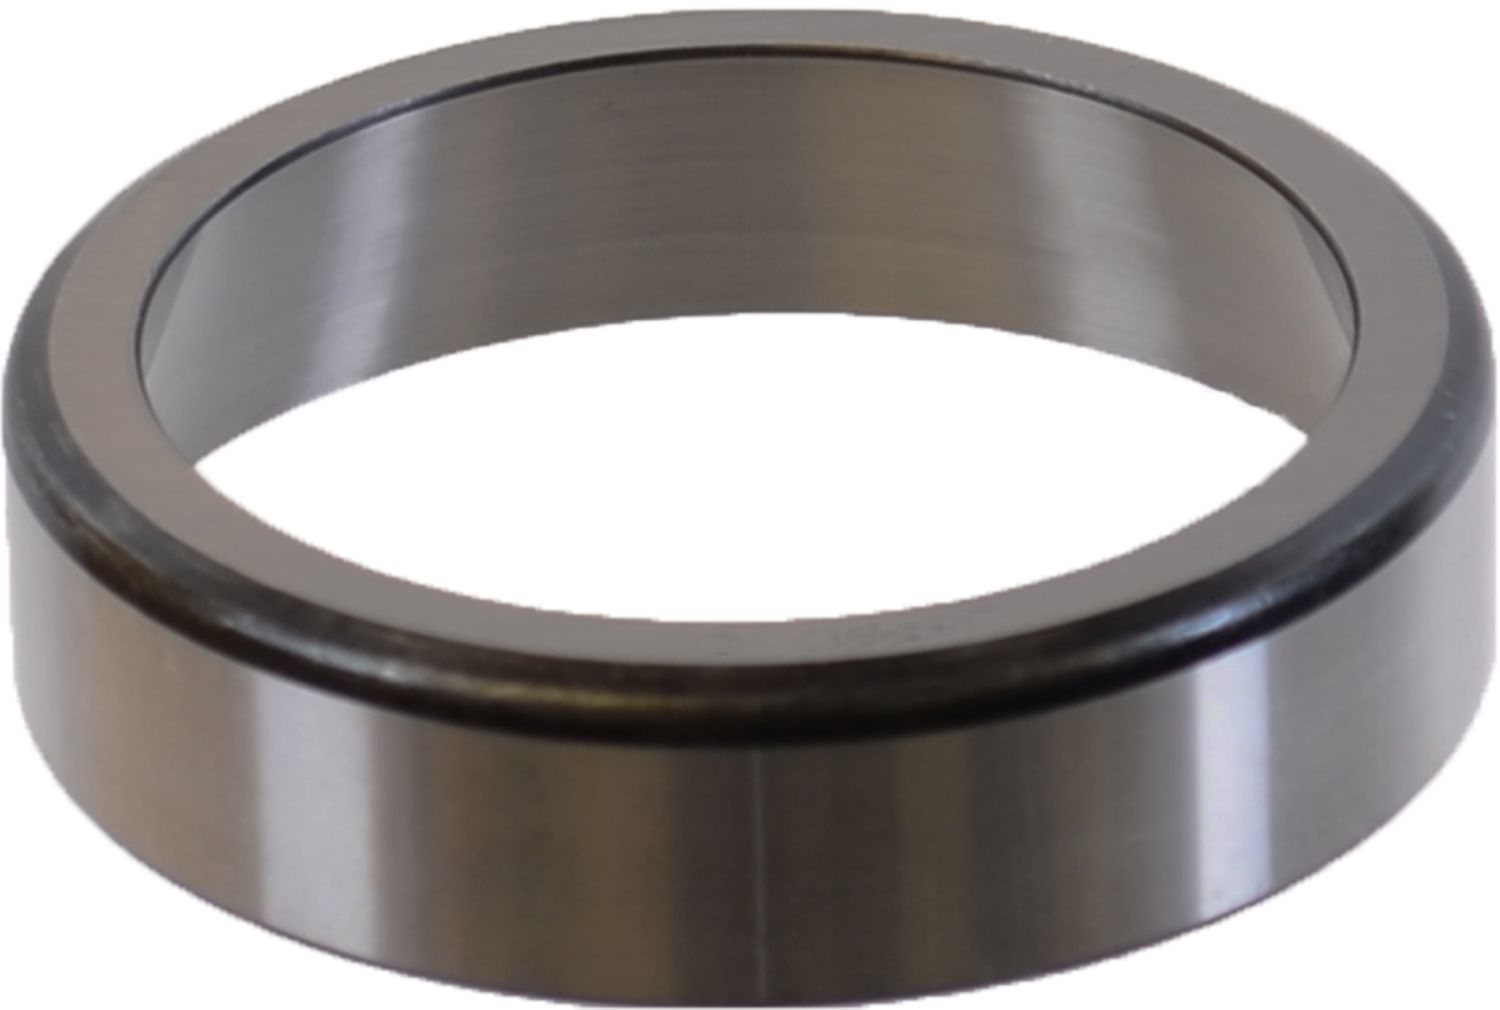 SKF (CHICAGO RAWHIDE) - Axle Differential Race - SKF LM501311 VP